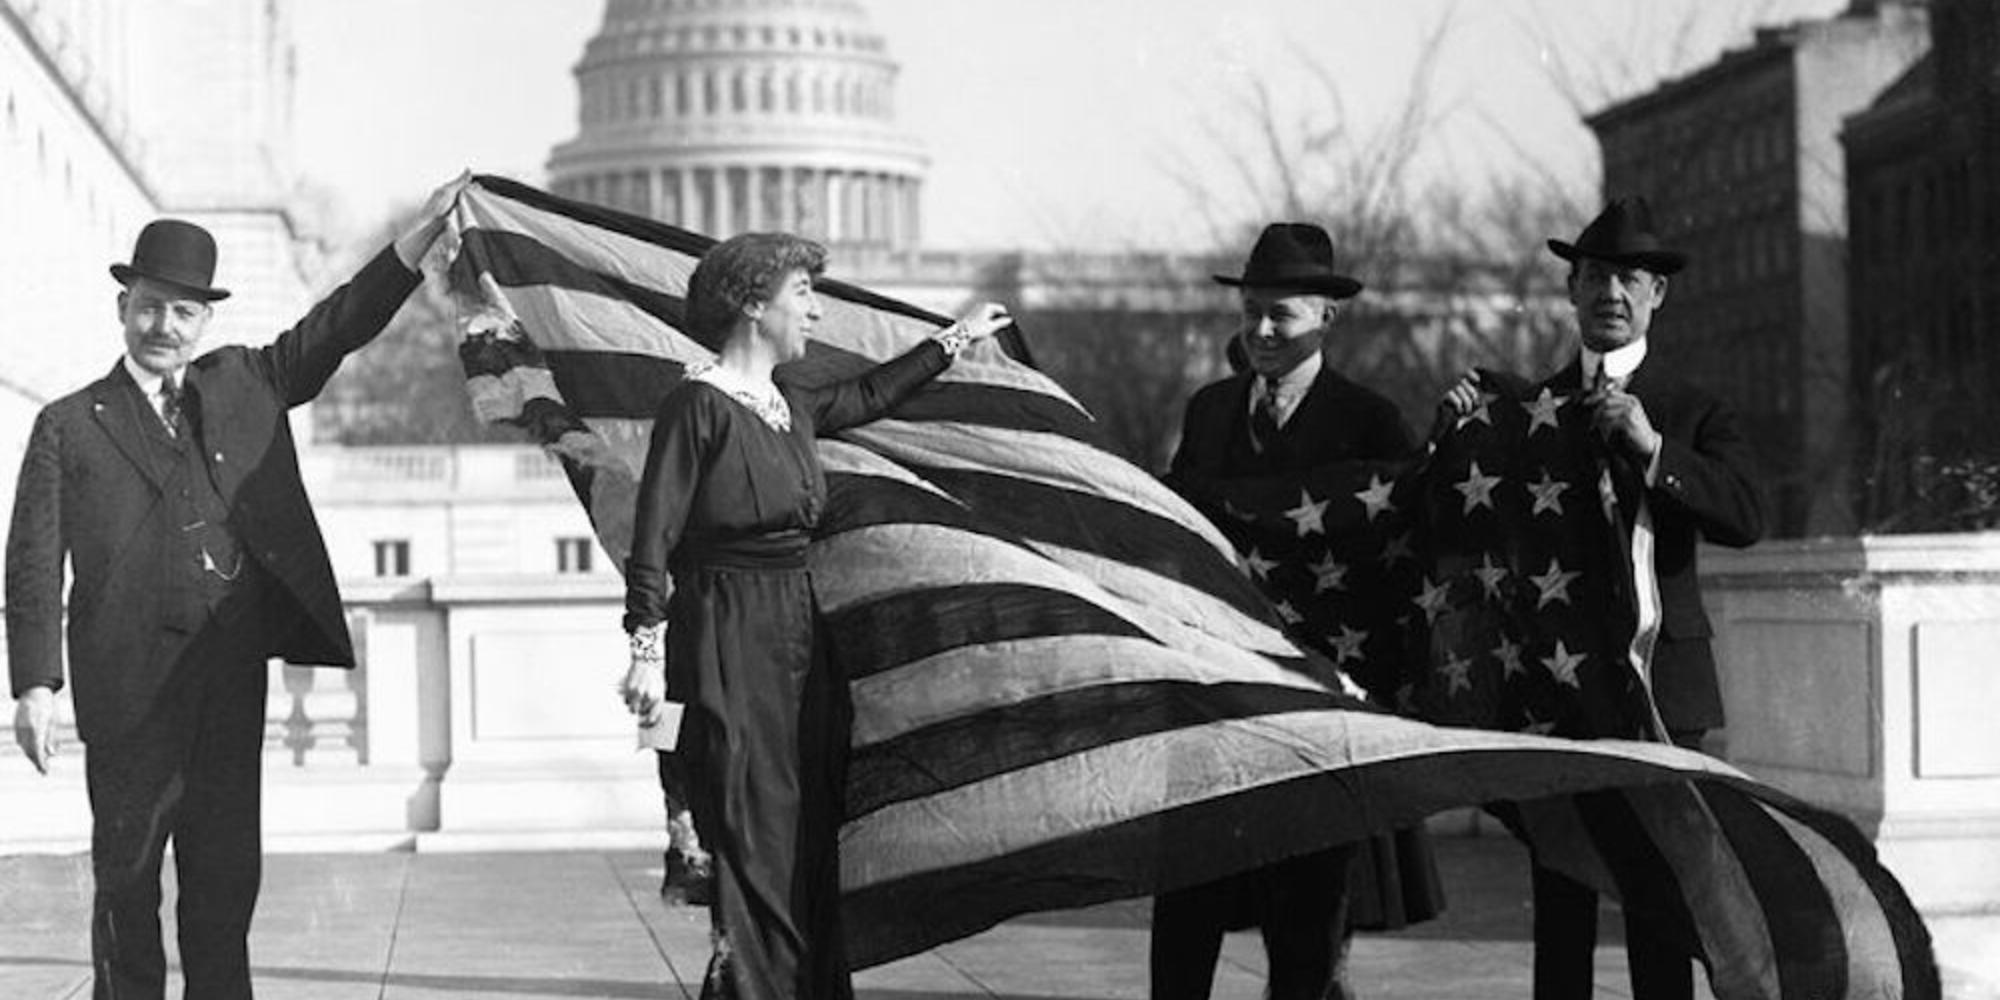 桃皮绒兰, first Woman elected to Congress, receiving the flag of the House of Representatives upon passage of women's suffrage.